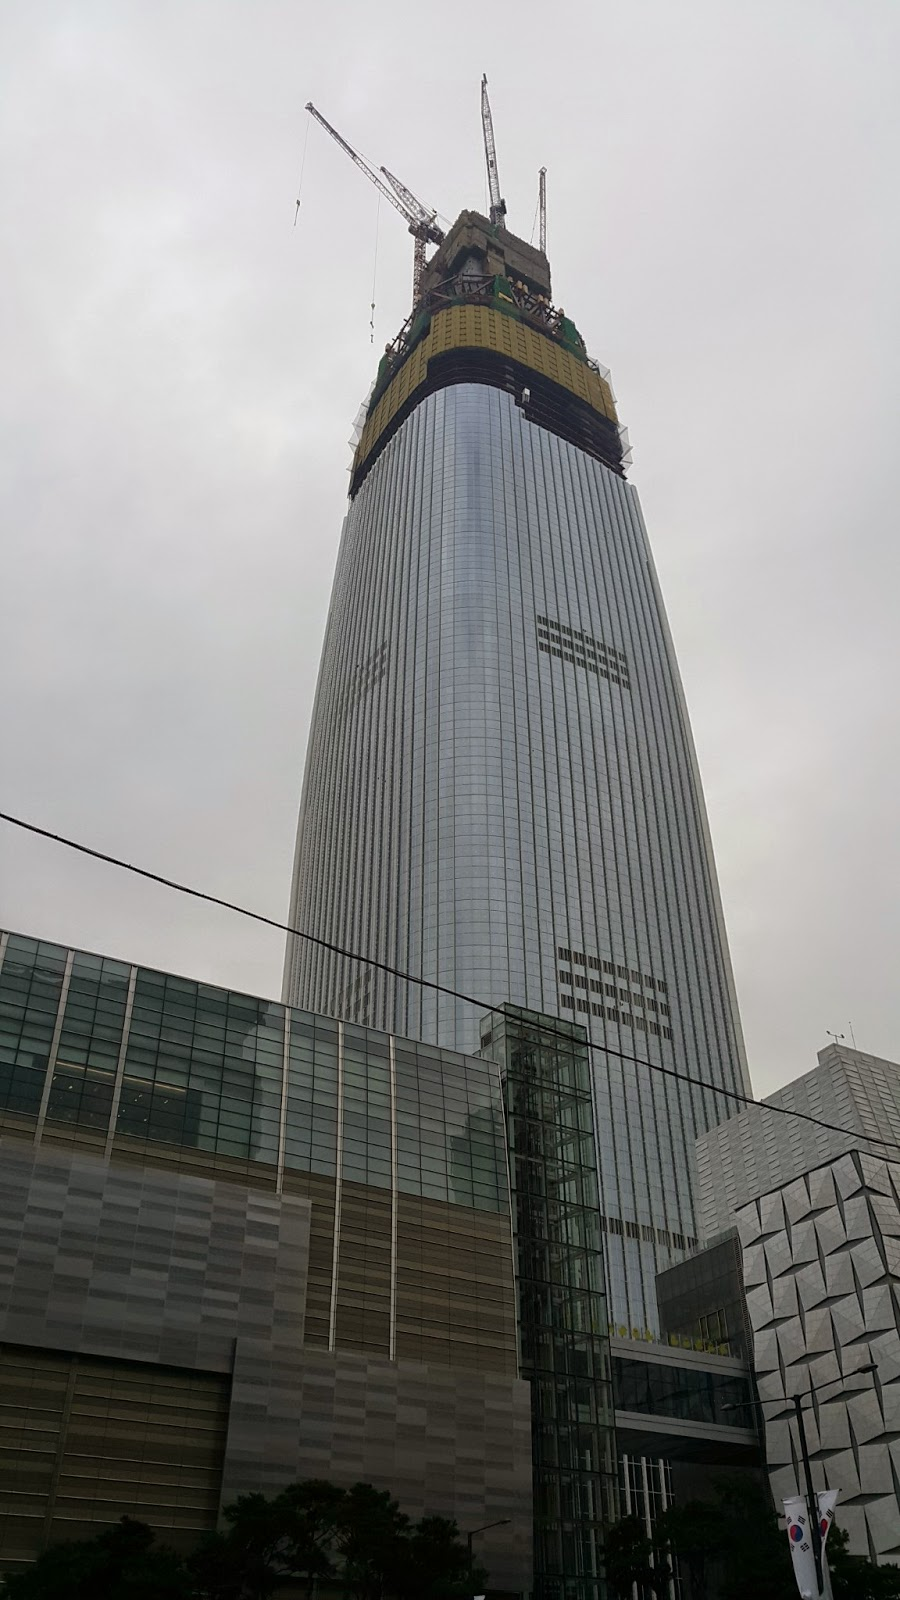 Tallest building in Seoul